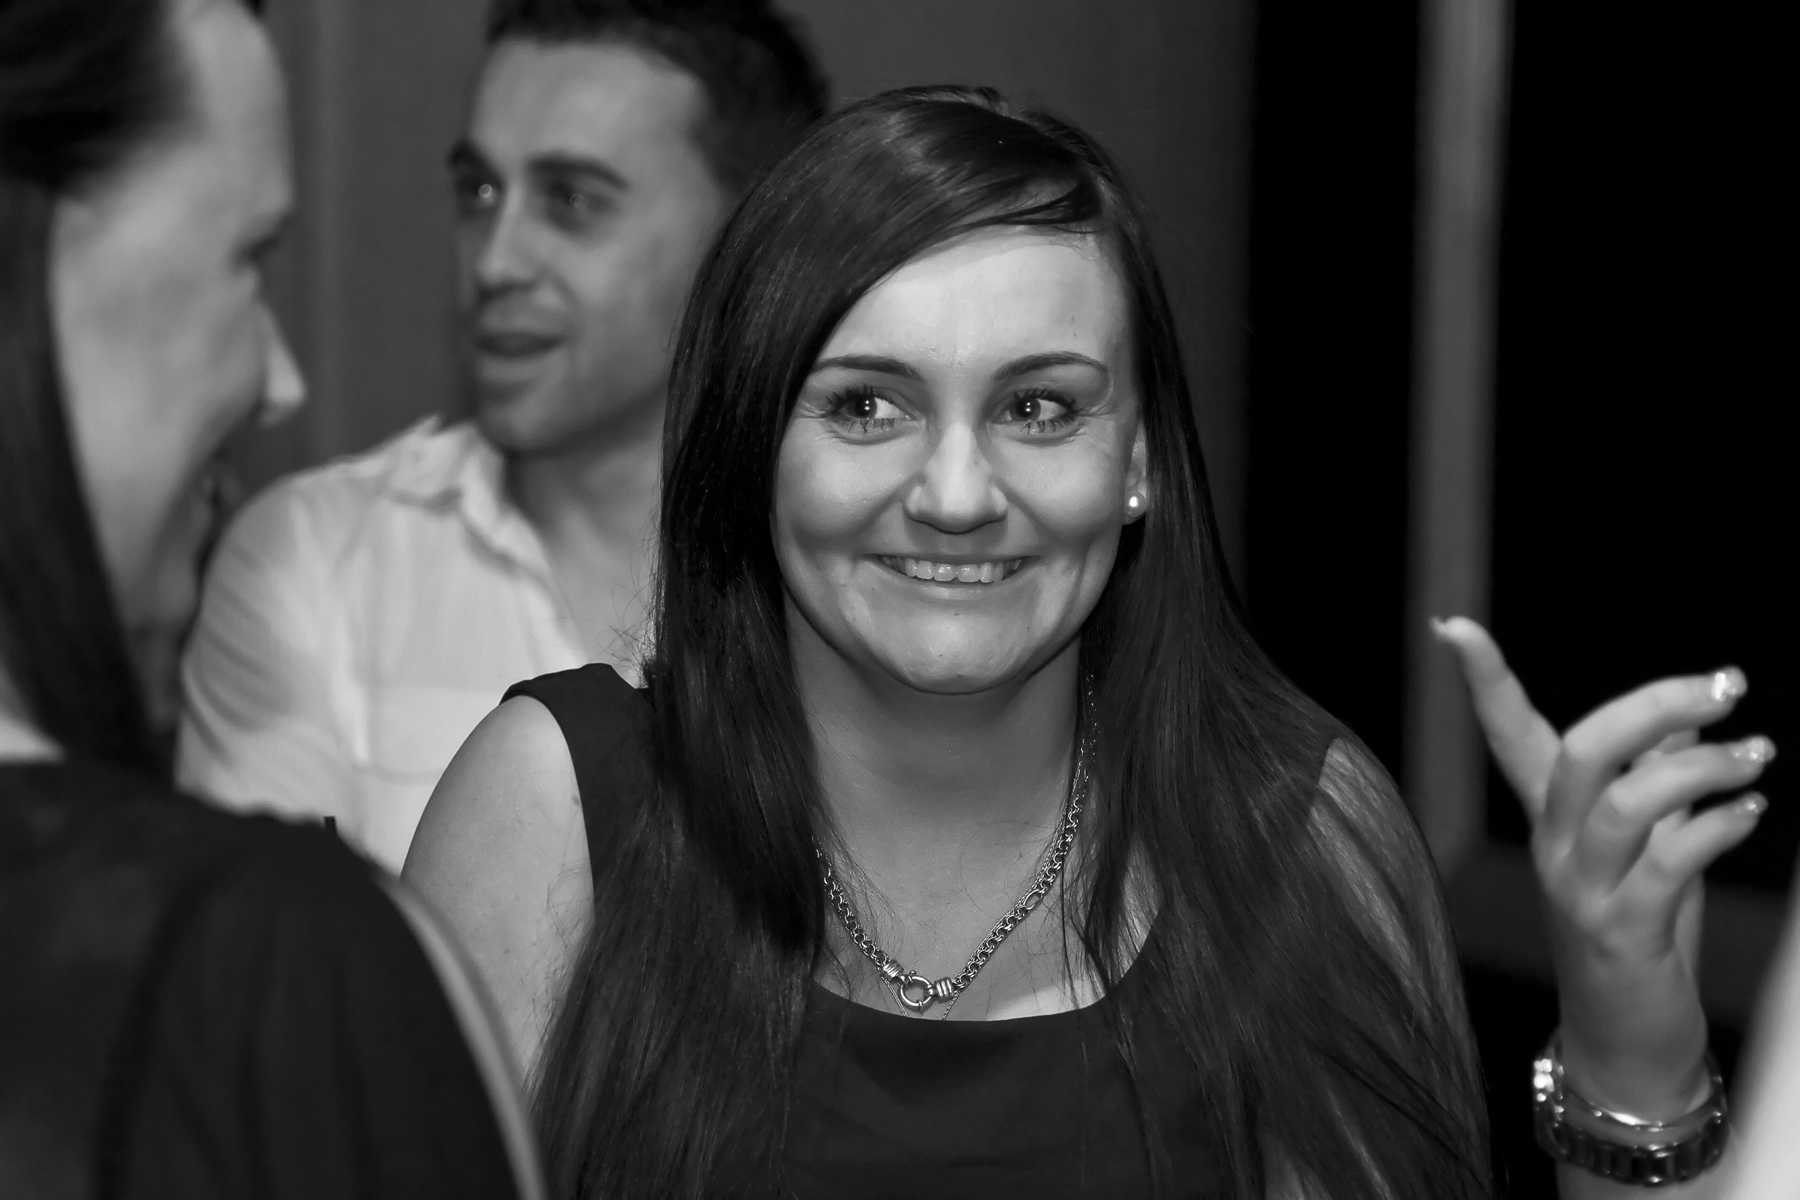 Tanya & Matts Engagement 015 BW.jpg